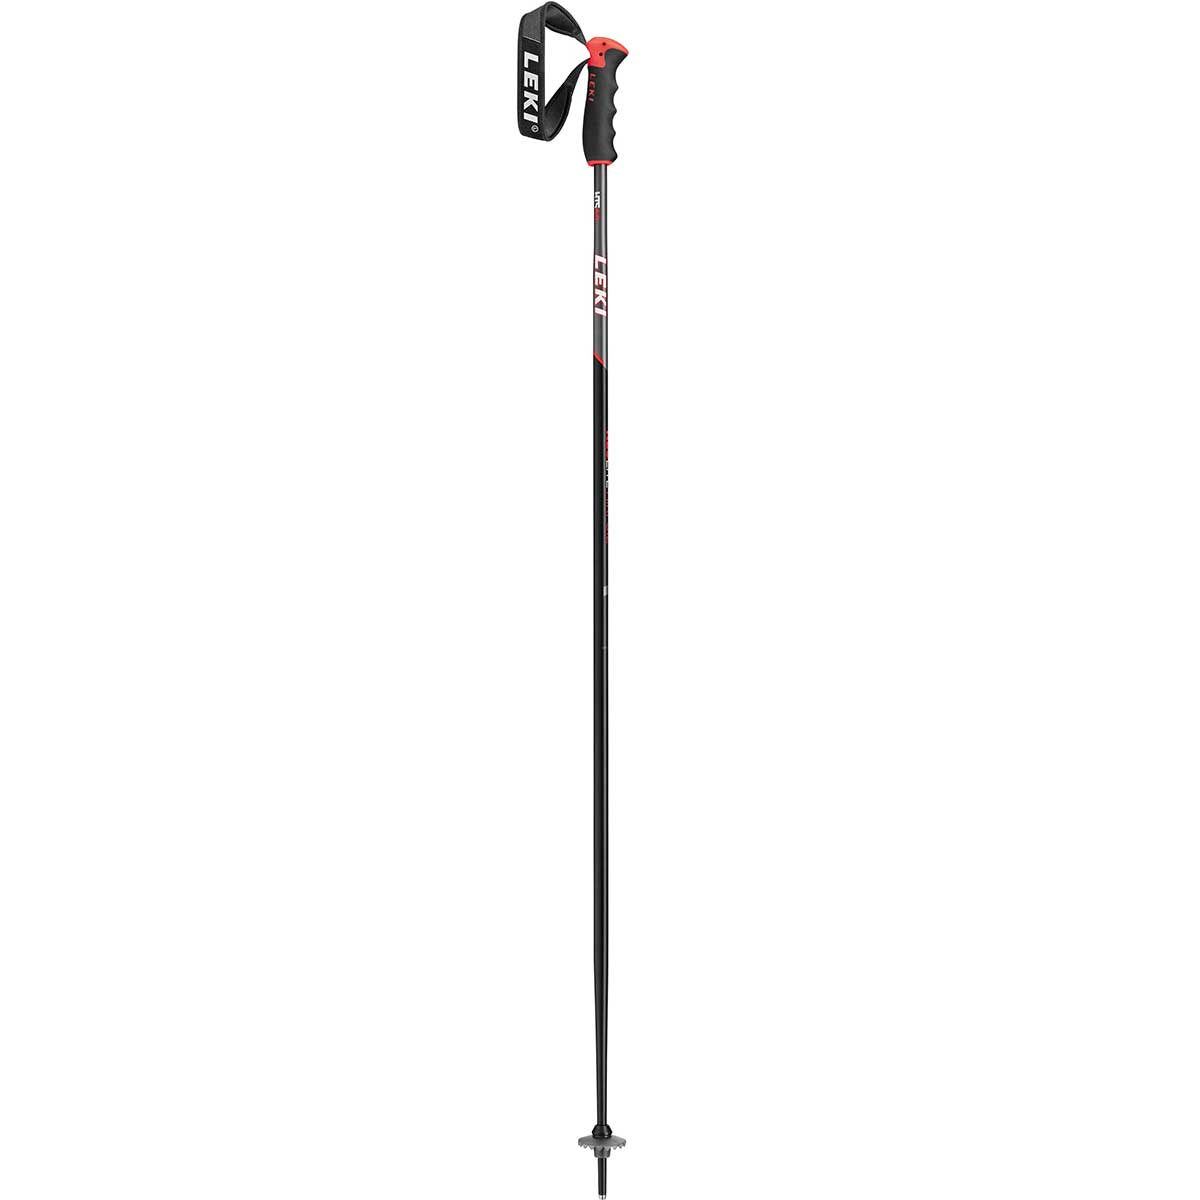 Leki Neolite Airfoil ski pole in black and red